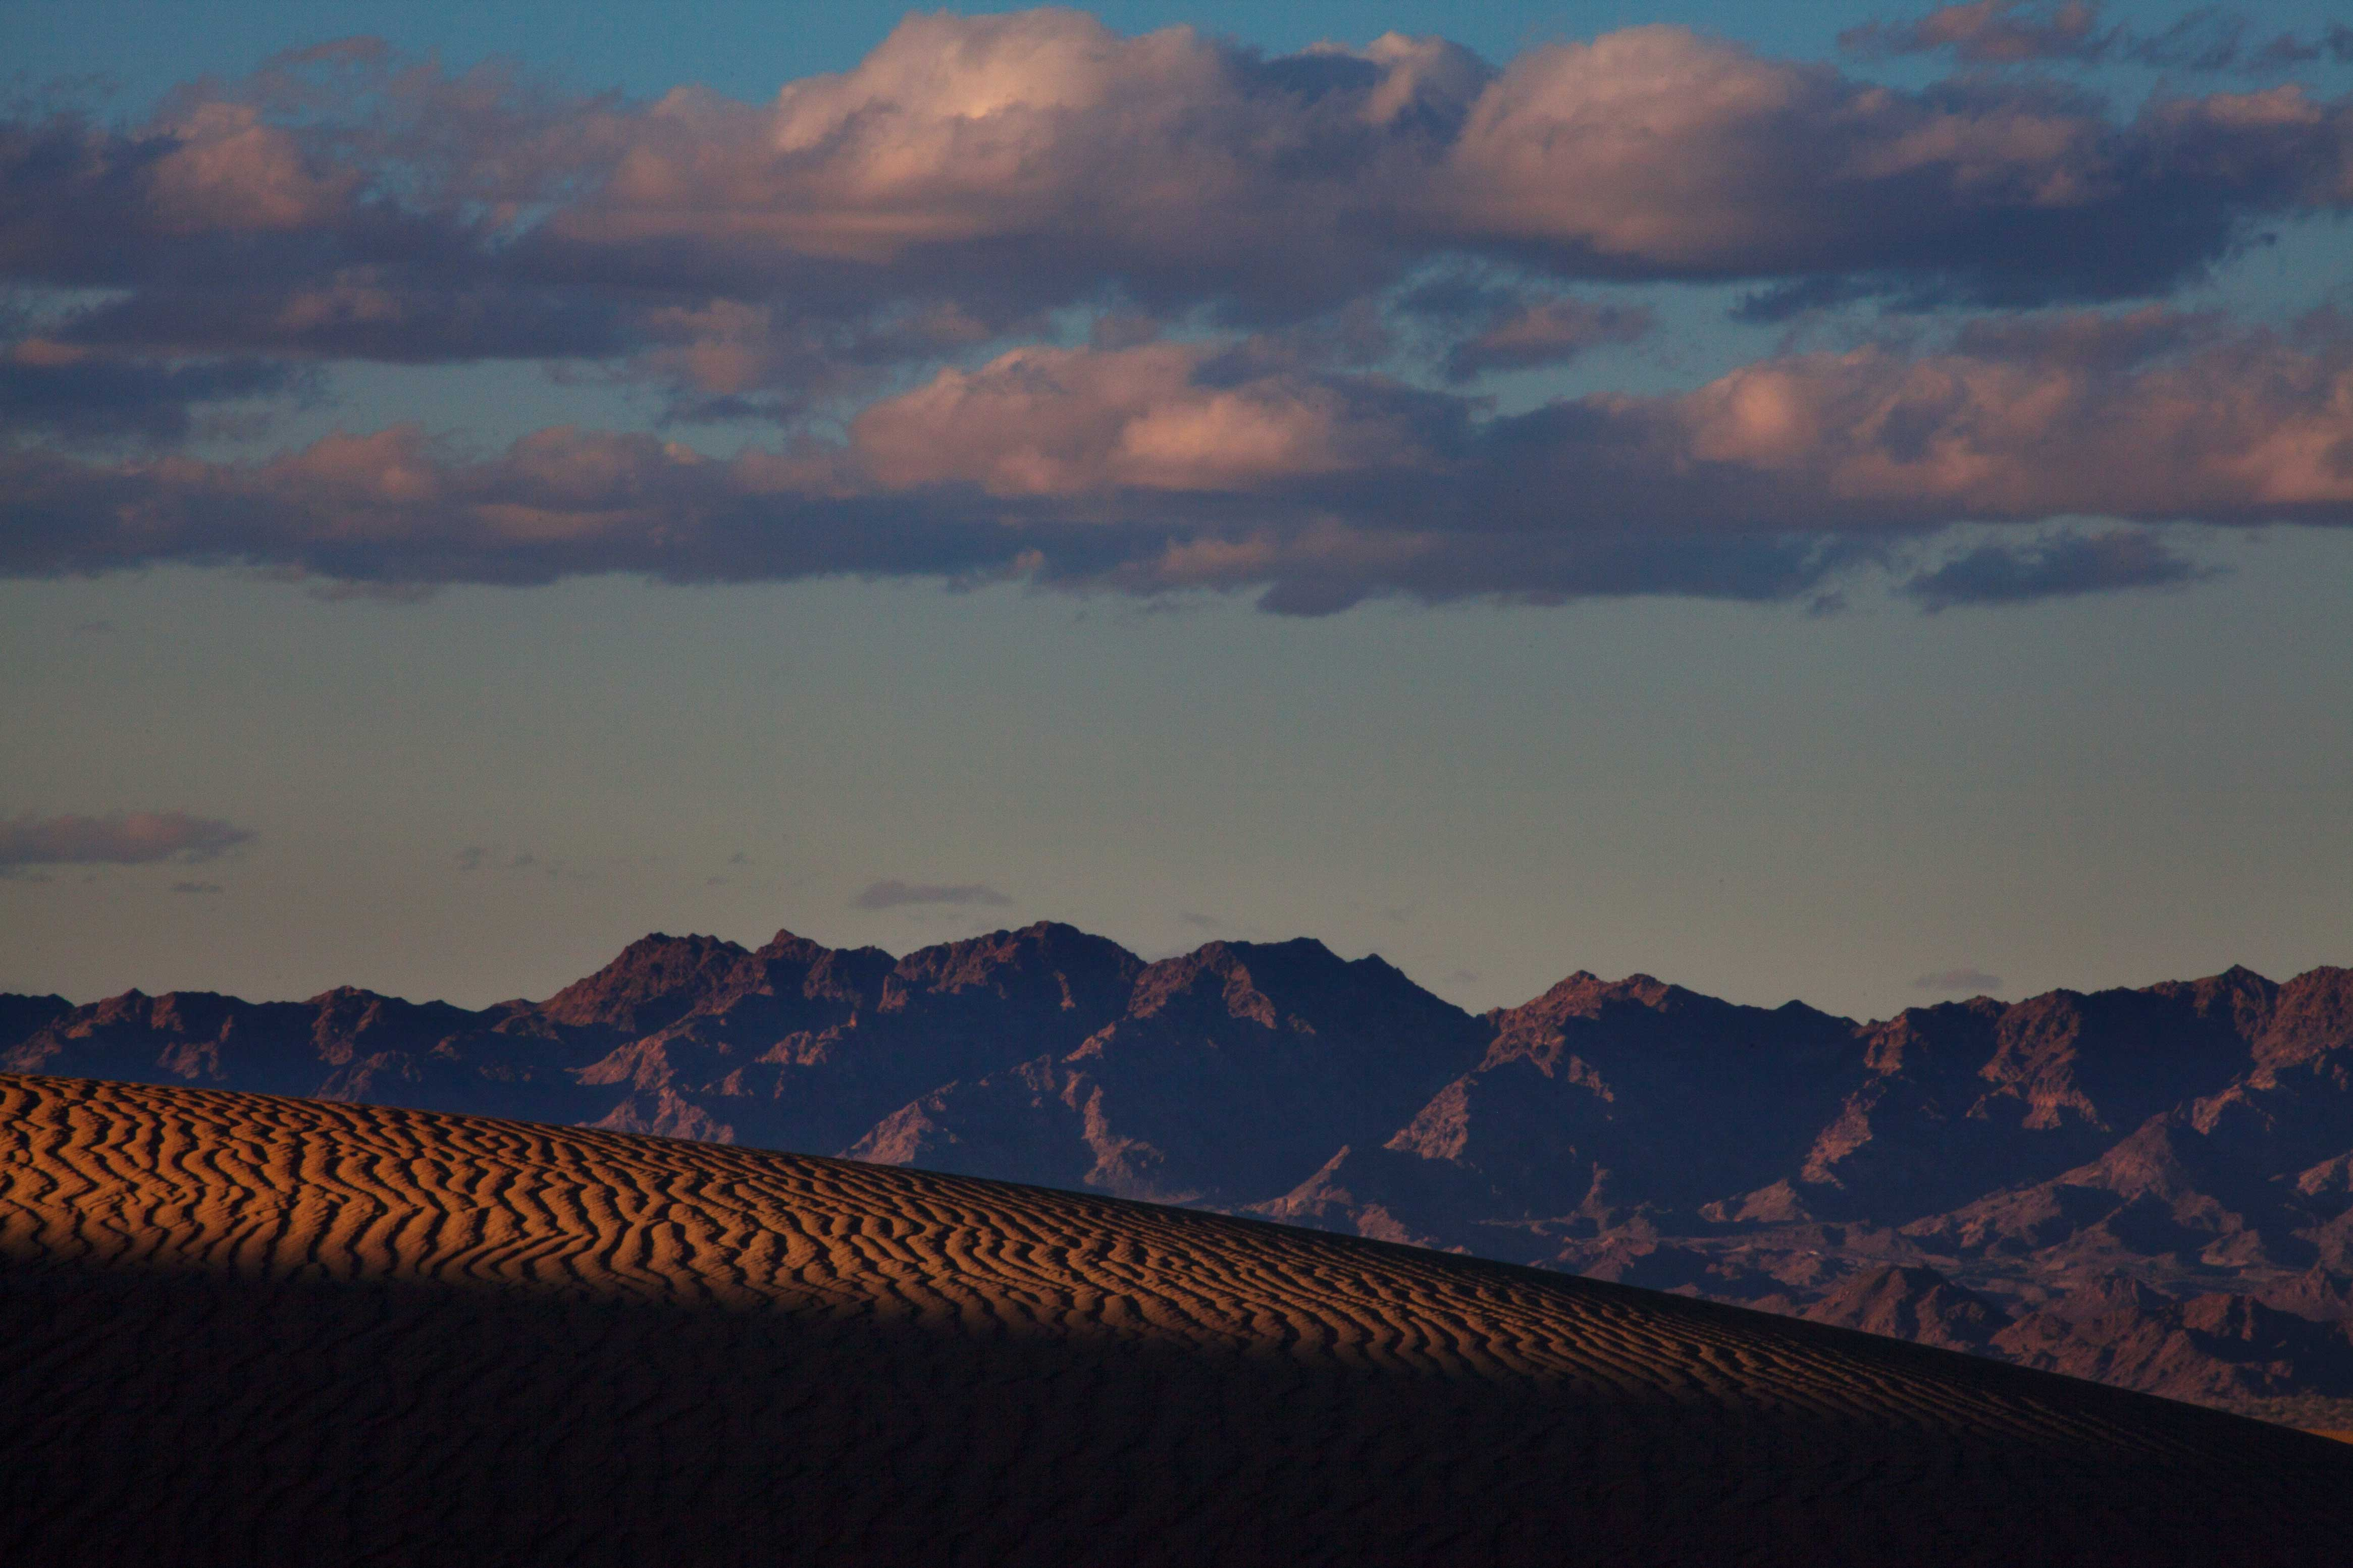 Imperial Sand Dunes (Algodones Dunes) in the southern California desert, with the Chocolate Mts. in the distance